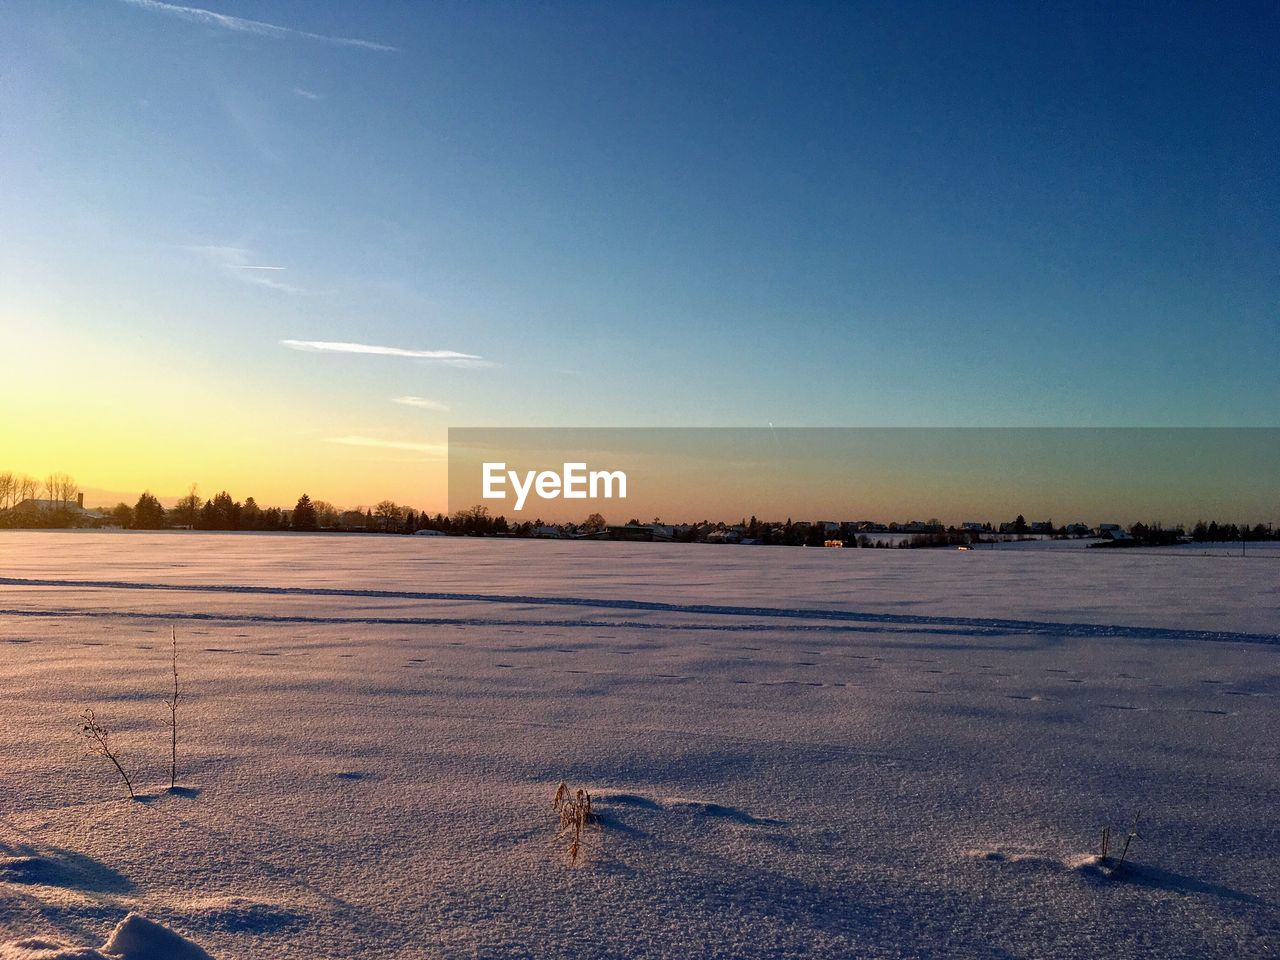 sky, snow, cold temperature, winter, nature, tranquility, tranquil scene, beauty in nature, no people, sunset, scenics - nature, environment, covering, field, landscape, outdoors, sunlight, blue, frozen